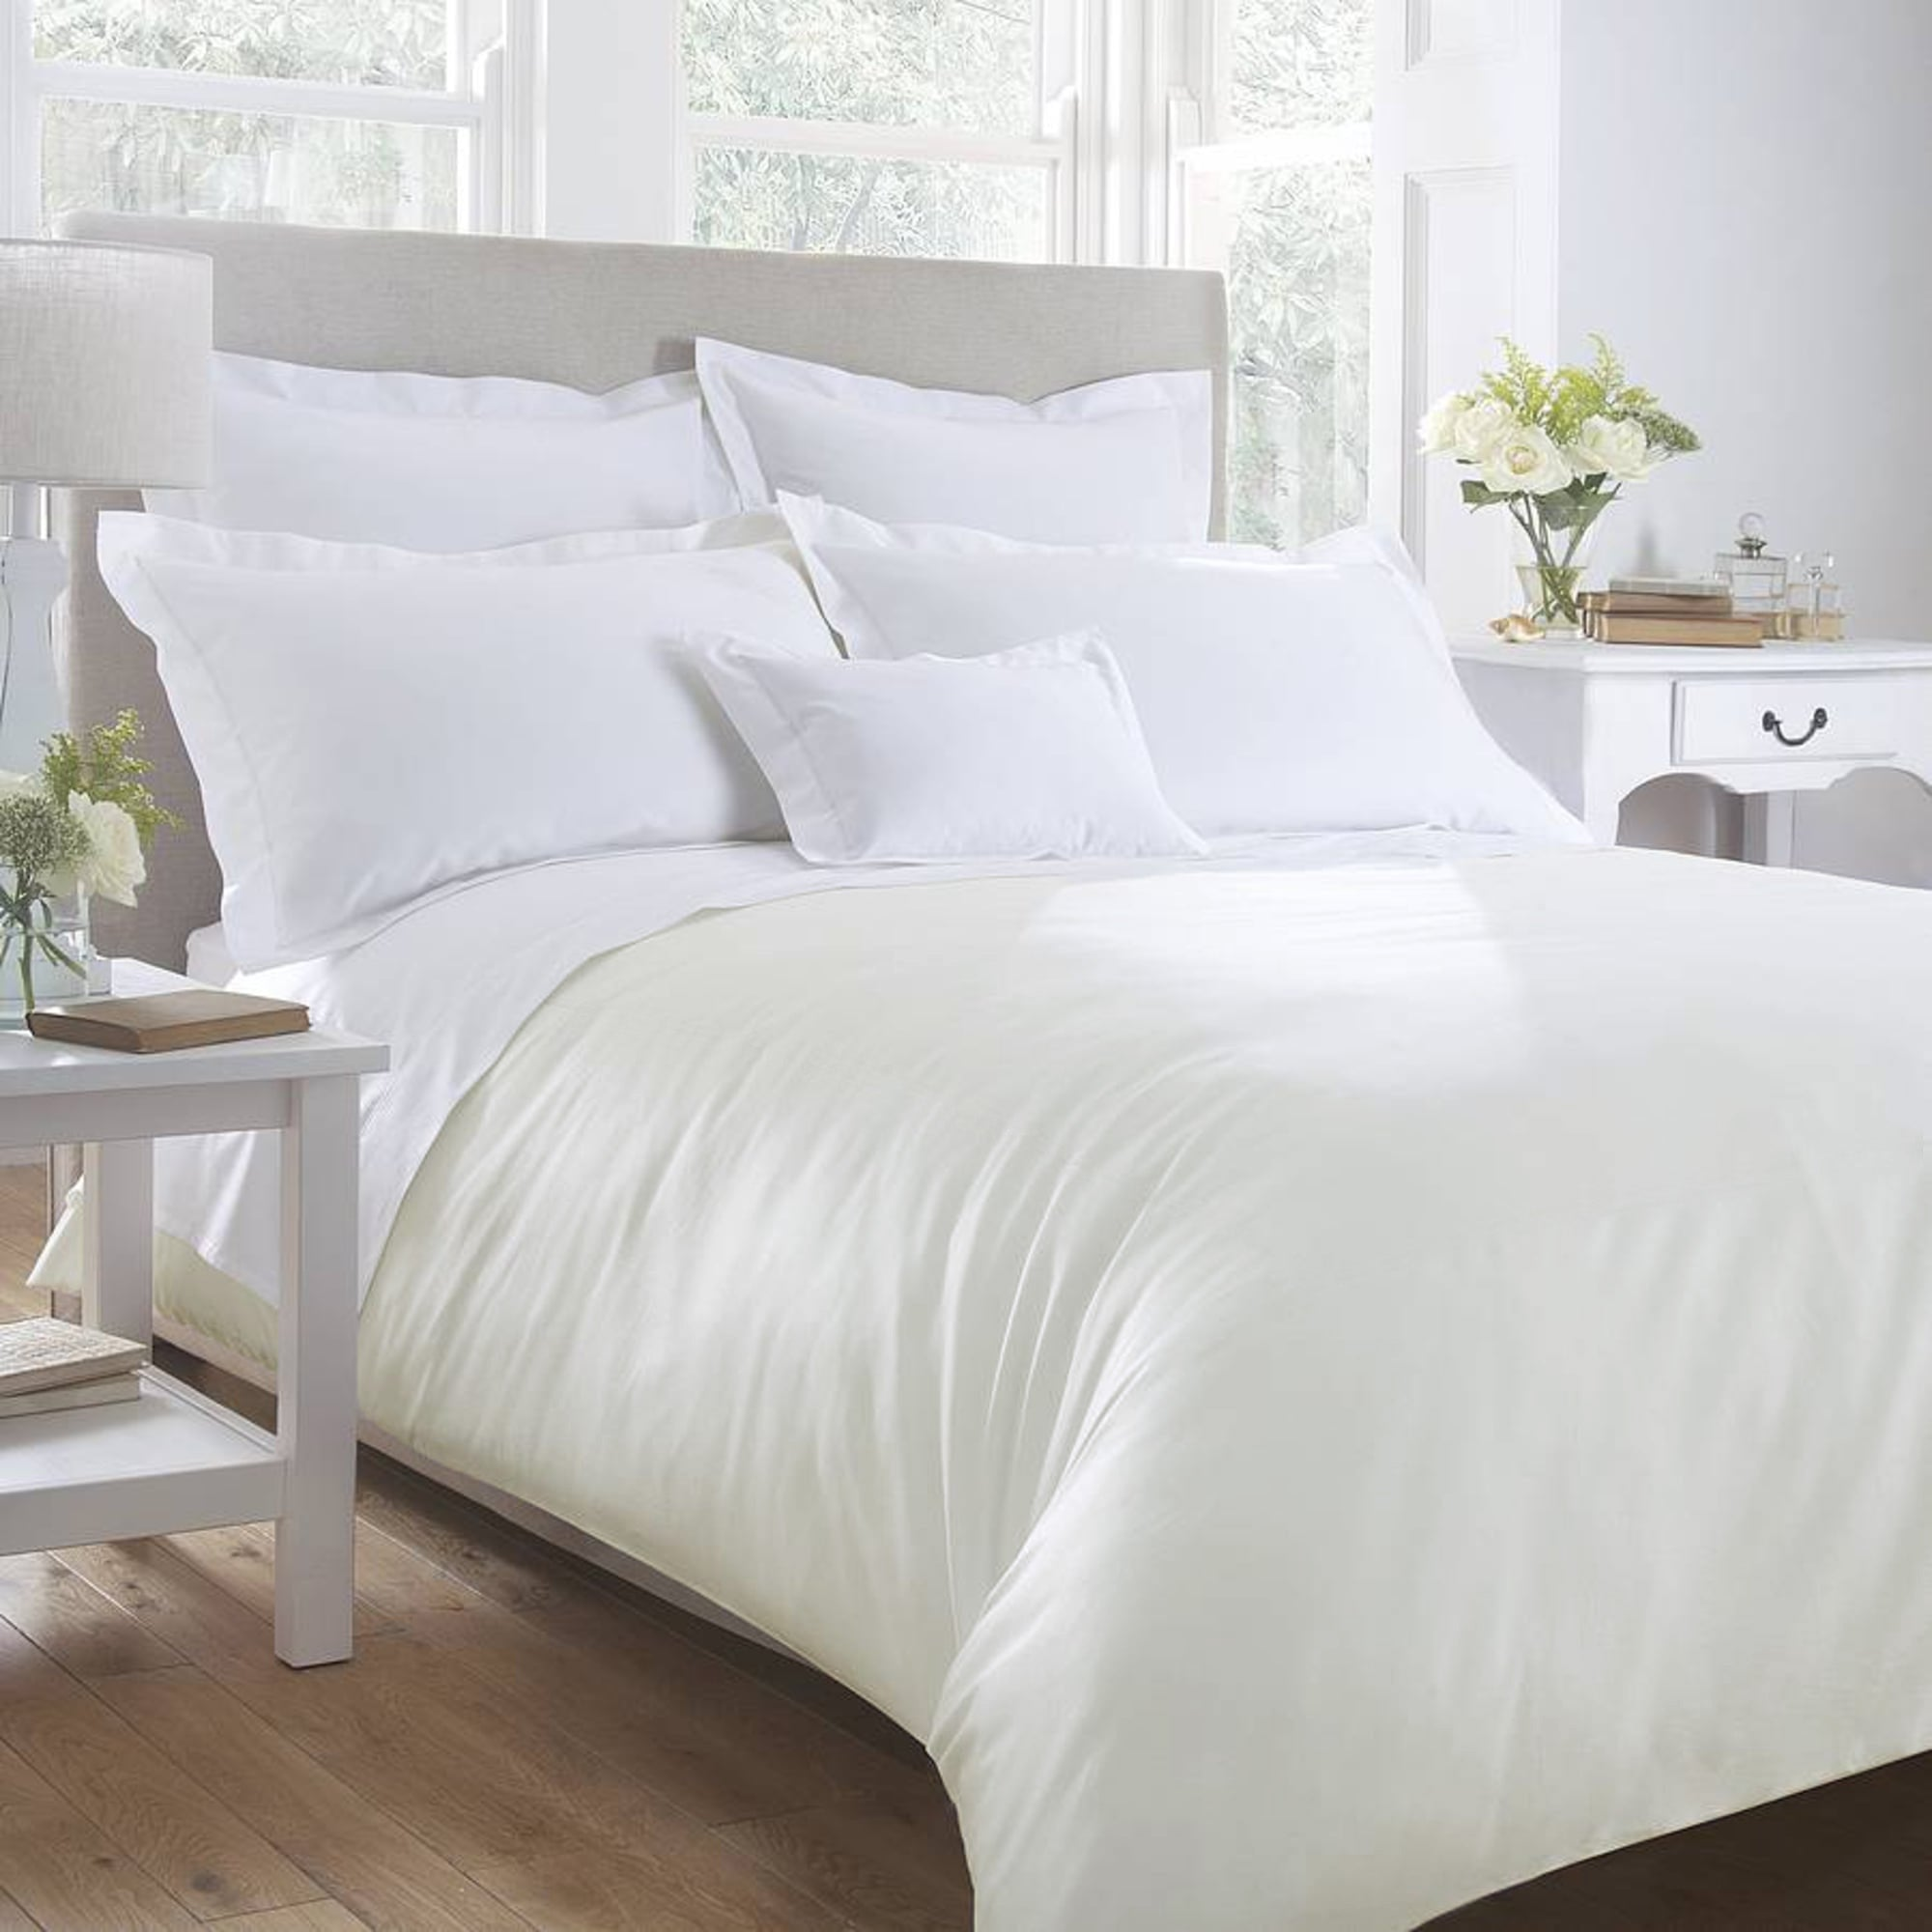 Organic Cotton Duvet Covers Queen And King Size